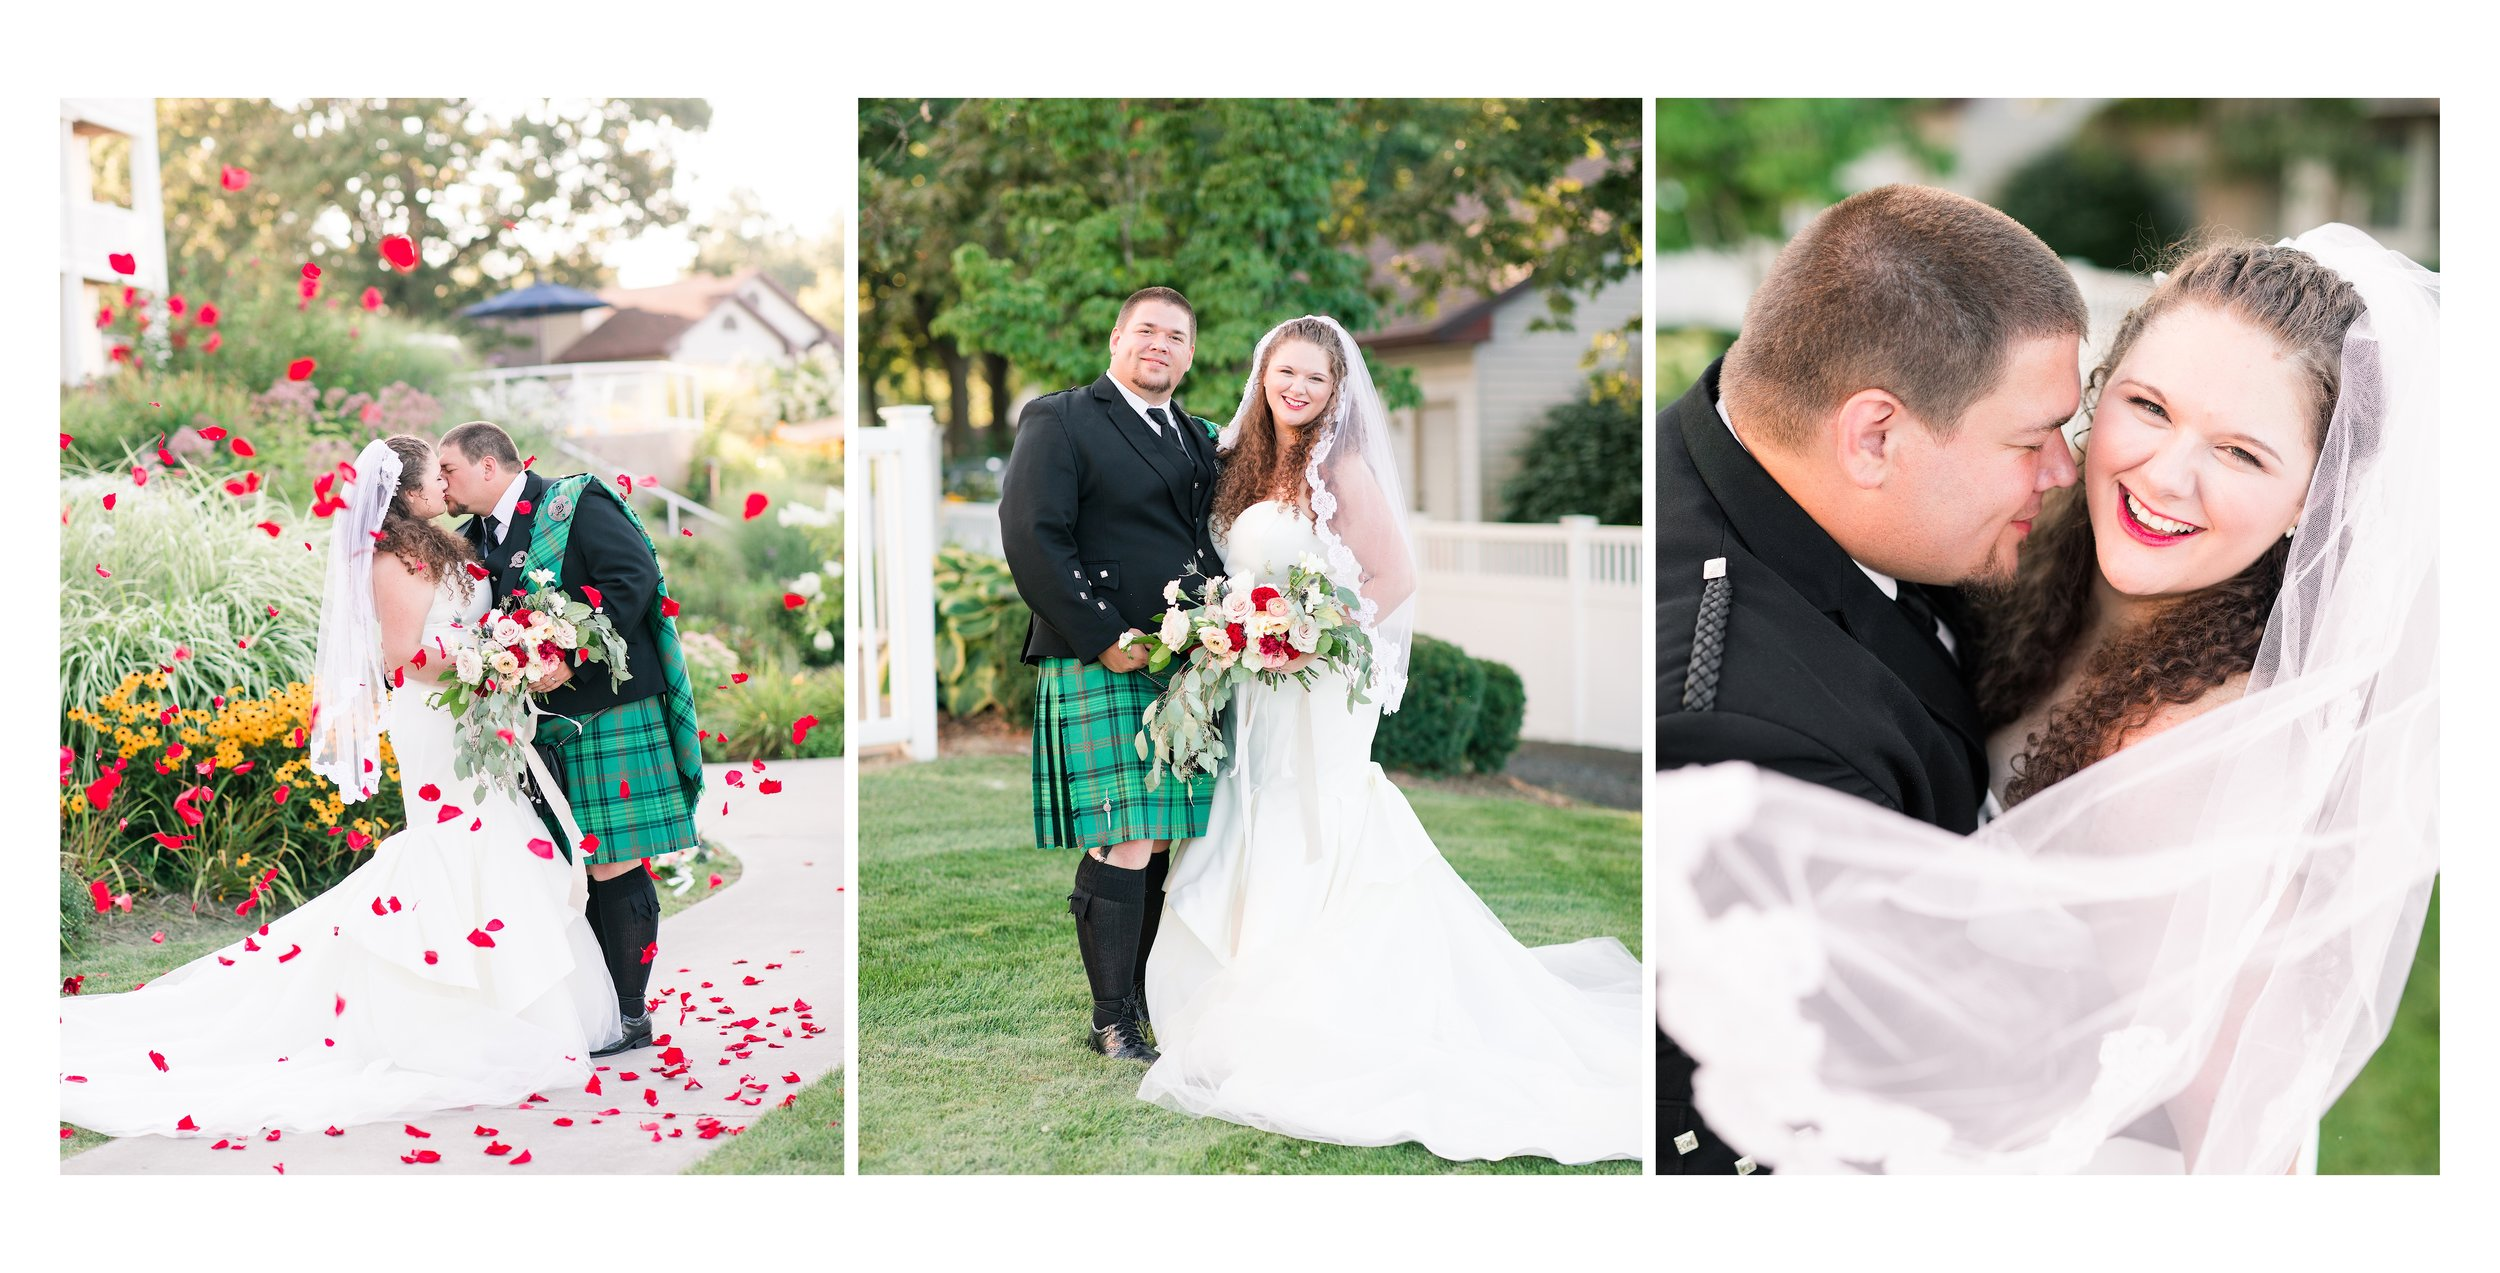 Our_Wedding_Album_12x12_-_30_pages_29.jpg